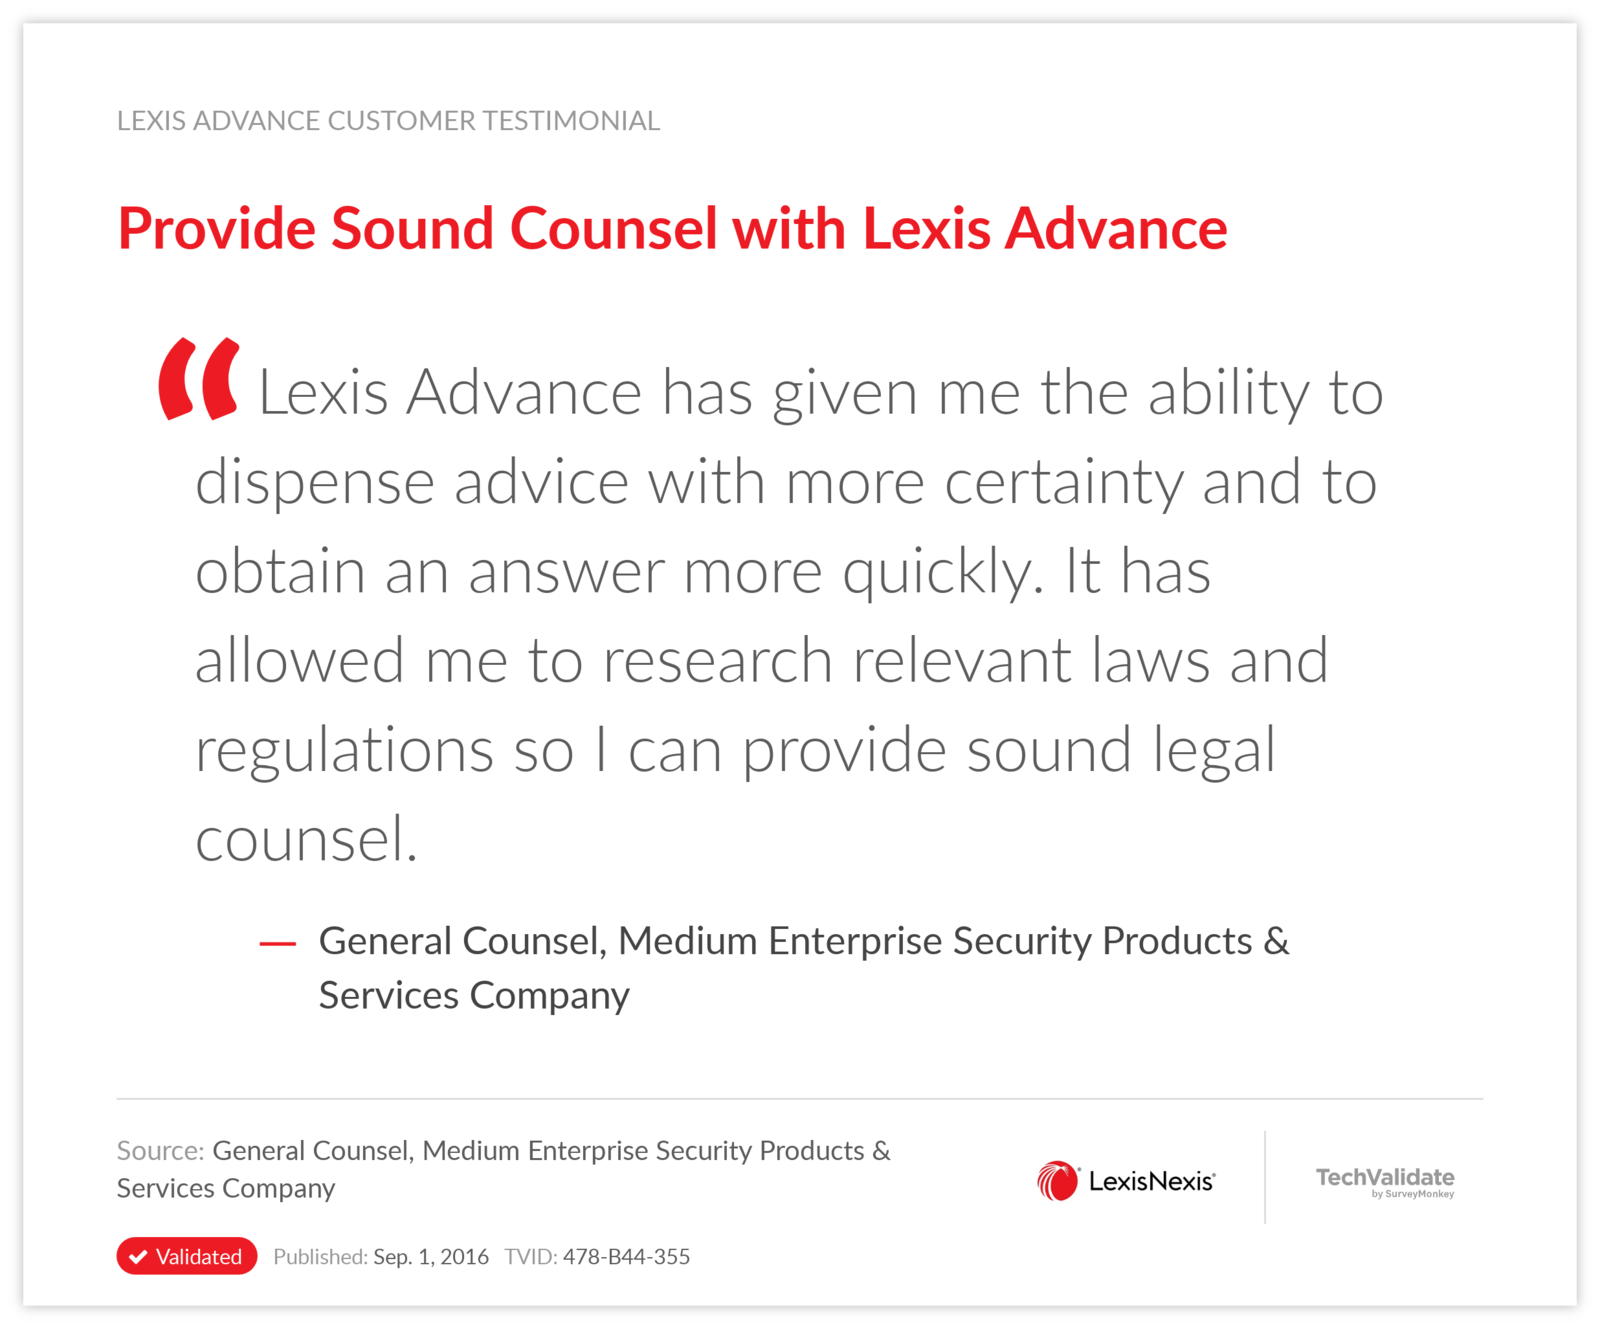 provide sound counsel with lexis advance